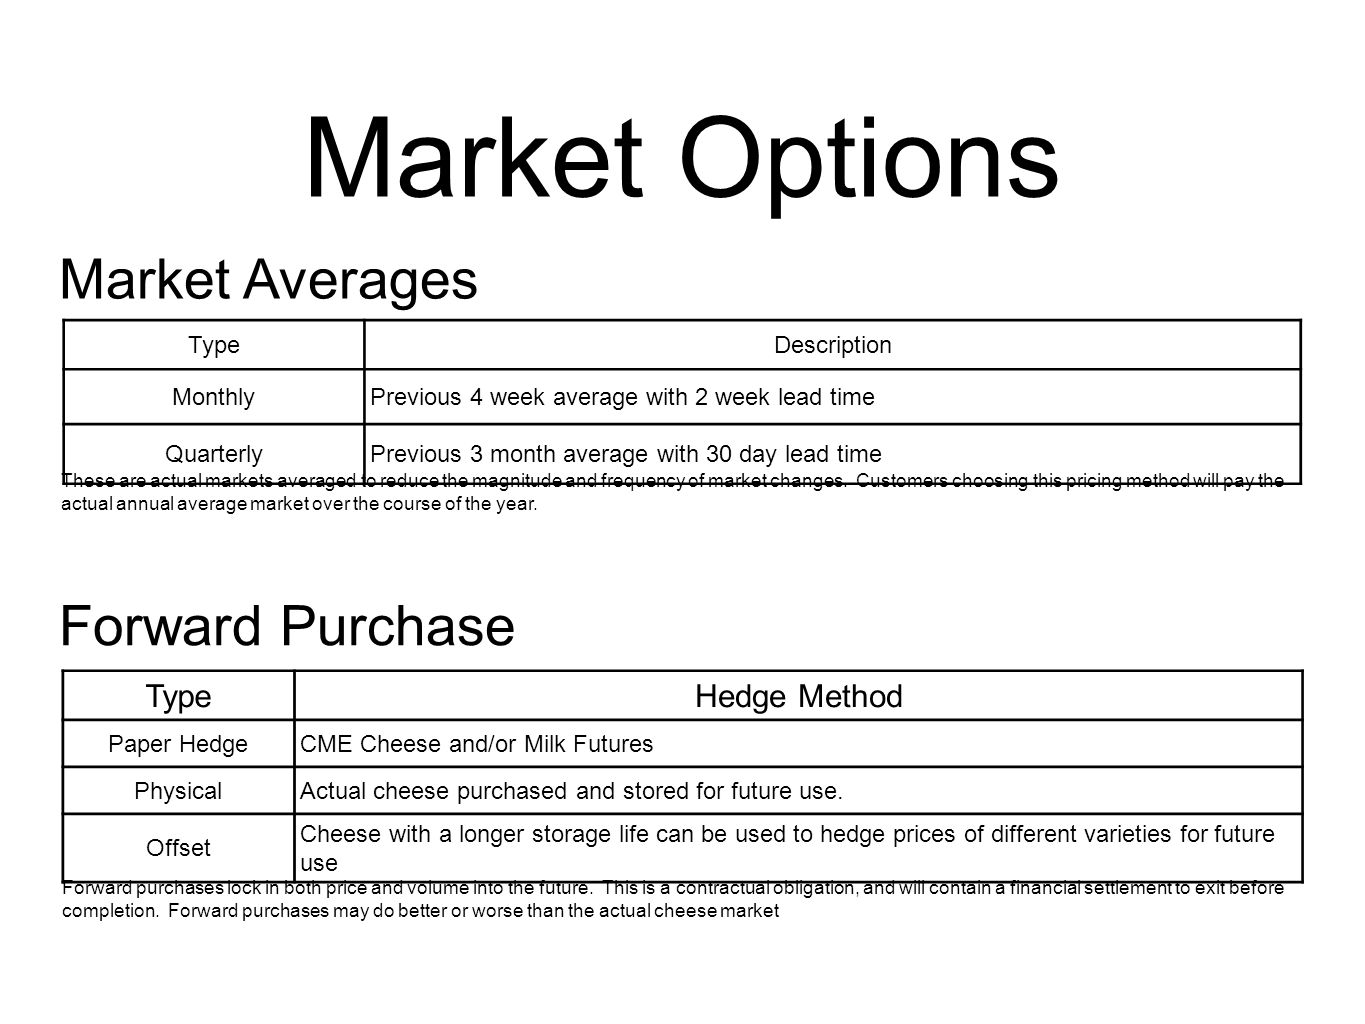 Market Options TypeDescription MonthlyPrevious 4 week average with 2 week lead time QuarterlyPrevious 3 month average with 30 day lead time TypeHedge Method Paper HedgeCME Cheese and/or Milk Futures PhysicalActual cheese purchased and stored for future use.